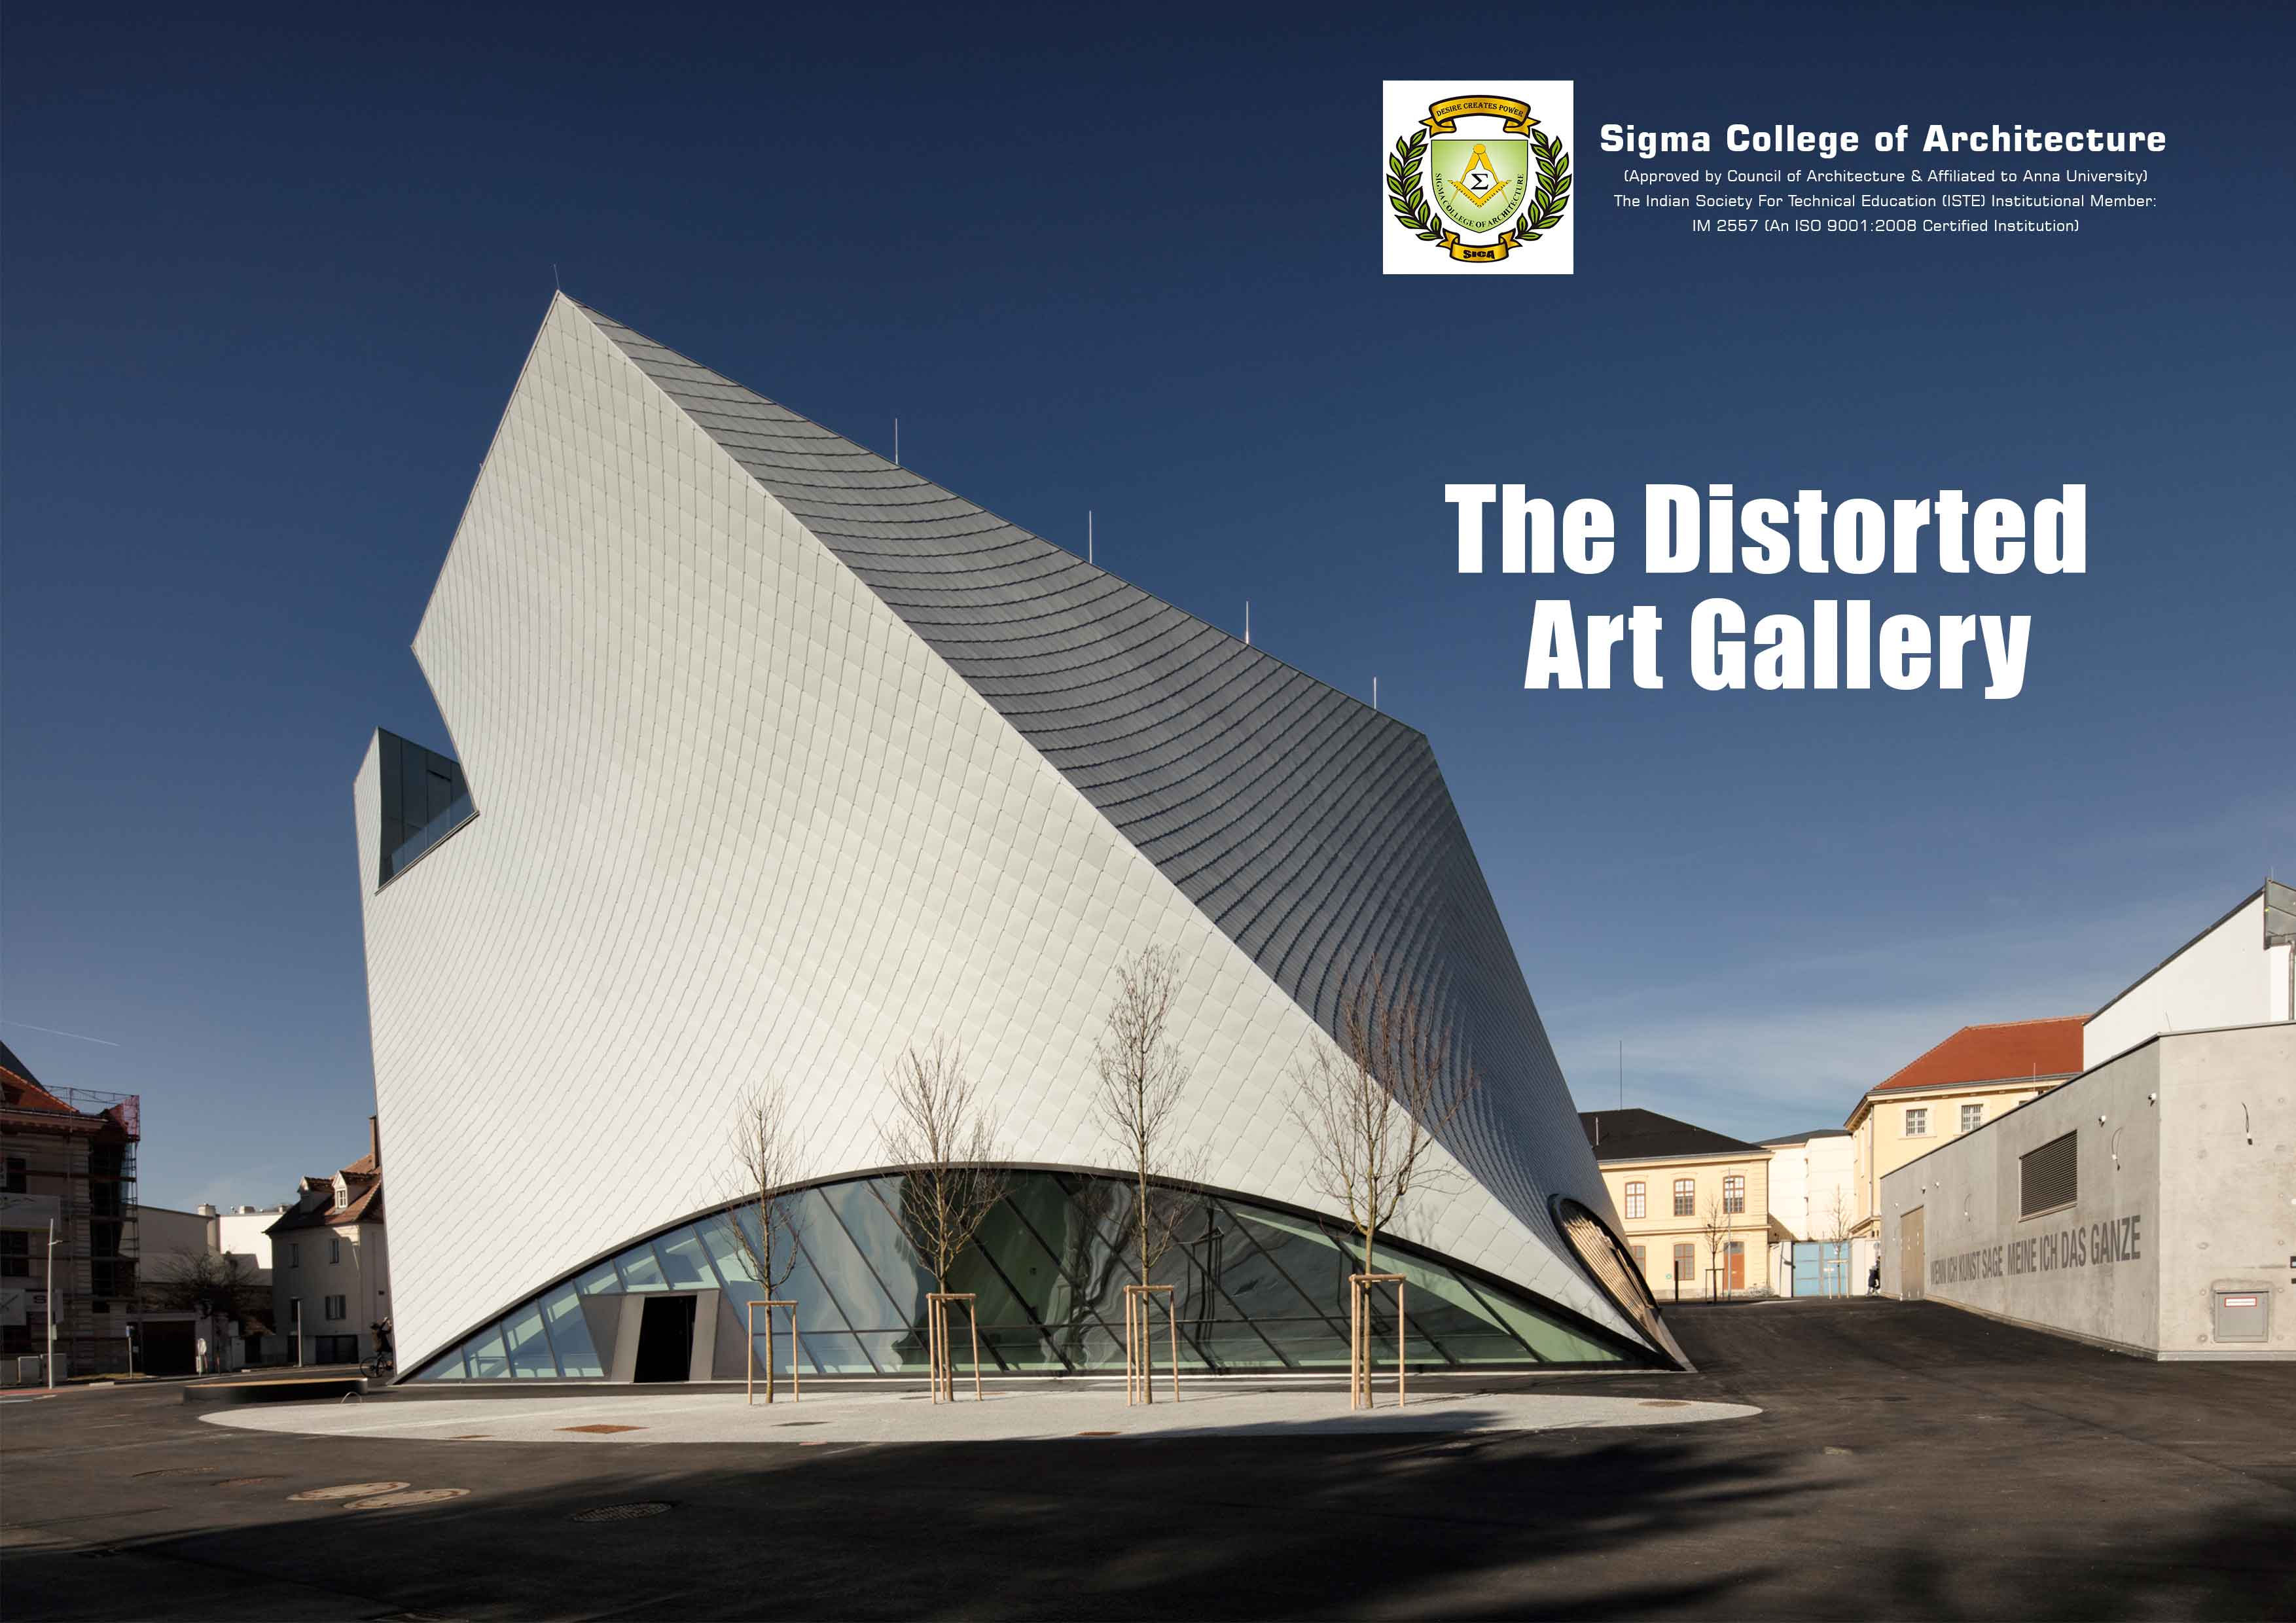 The Distorted Art Gallery